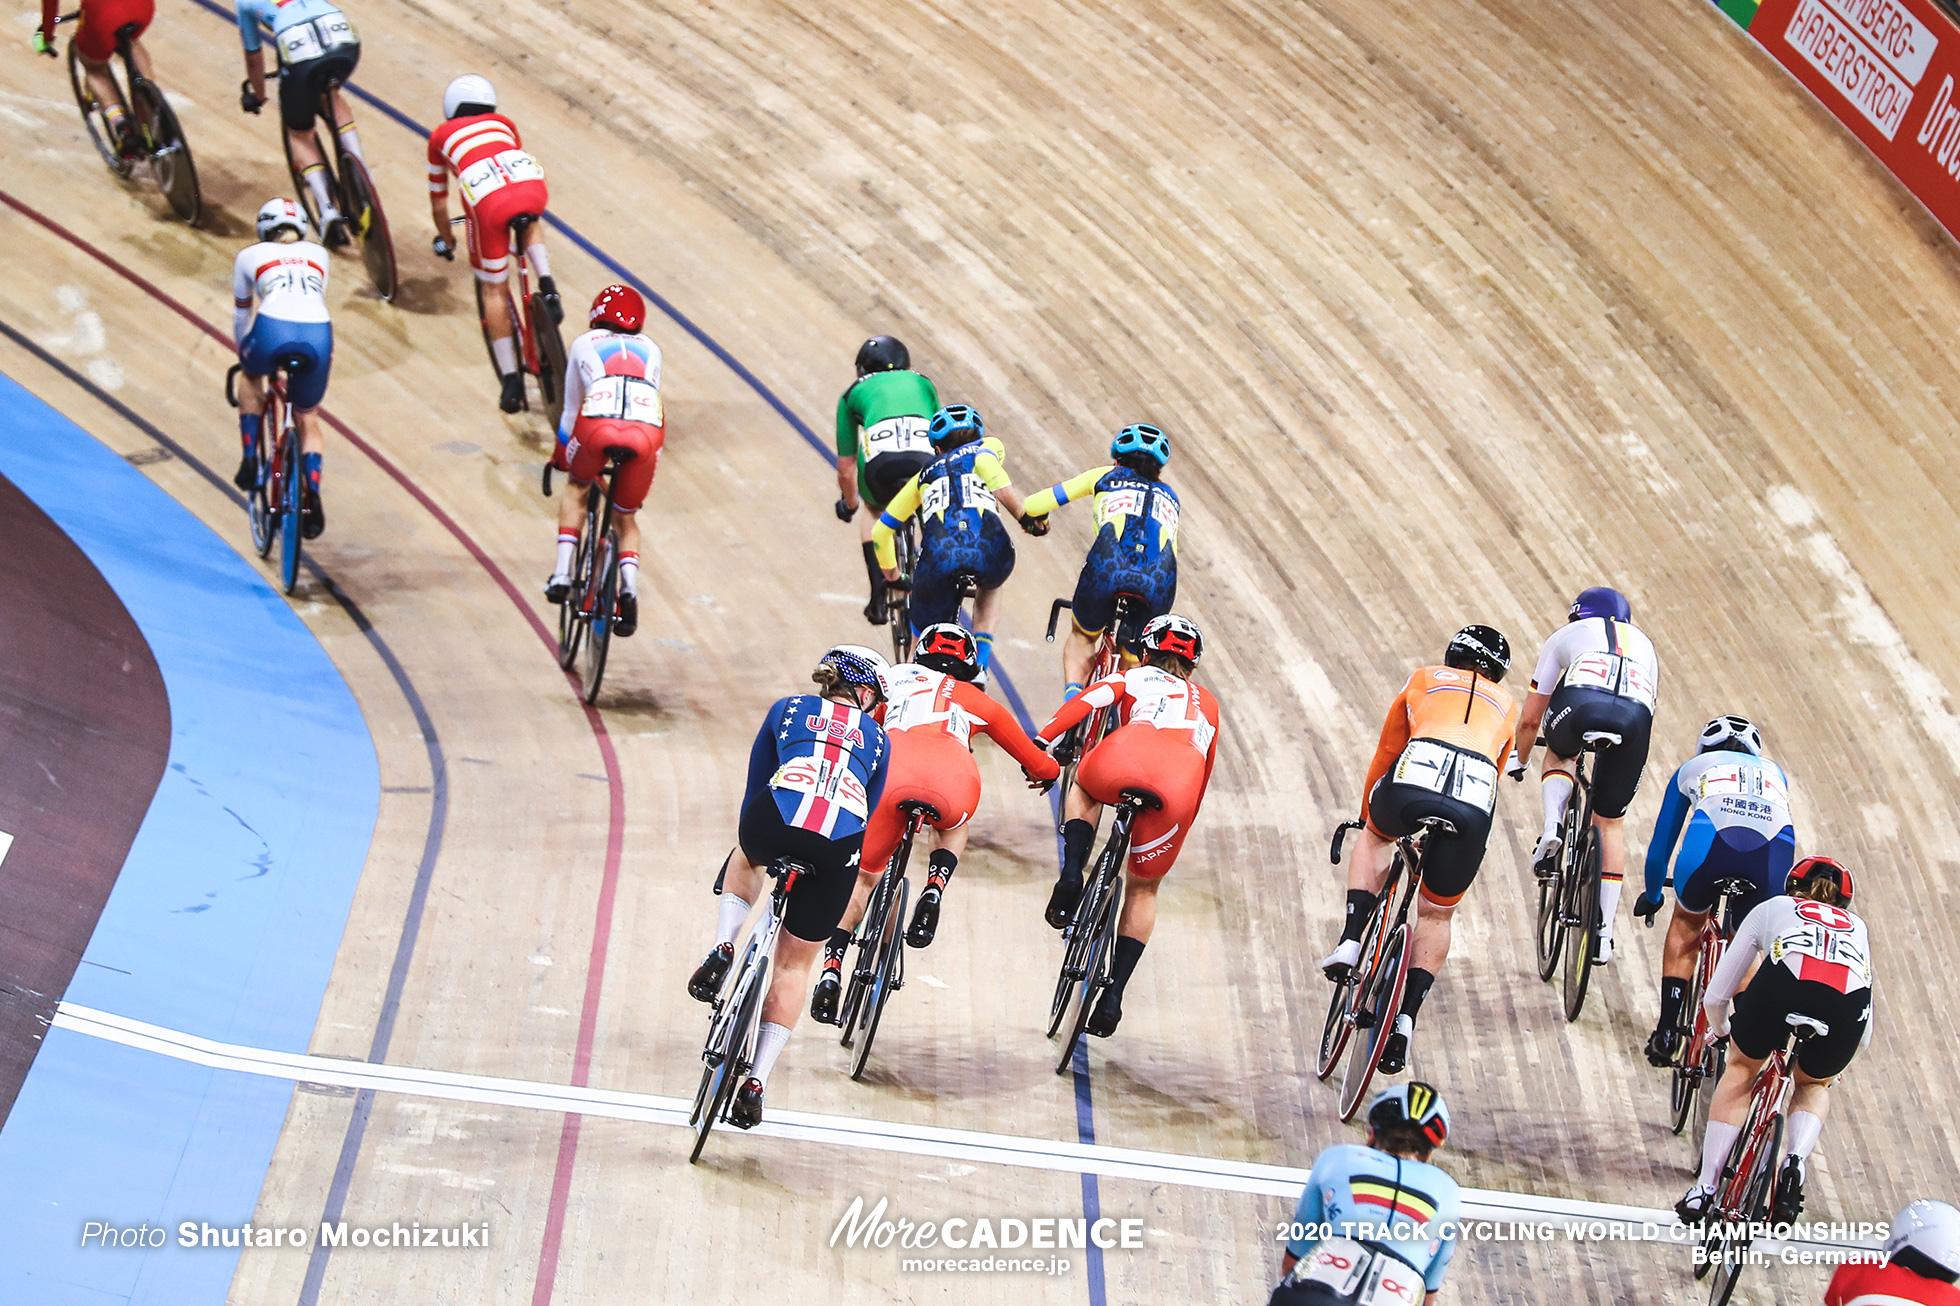 Women's Madison / 2020 Track Cycling World Championships